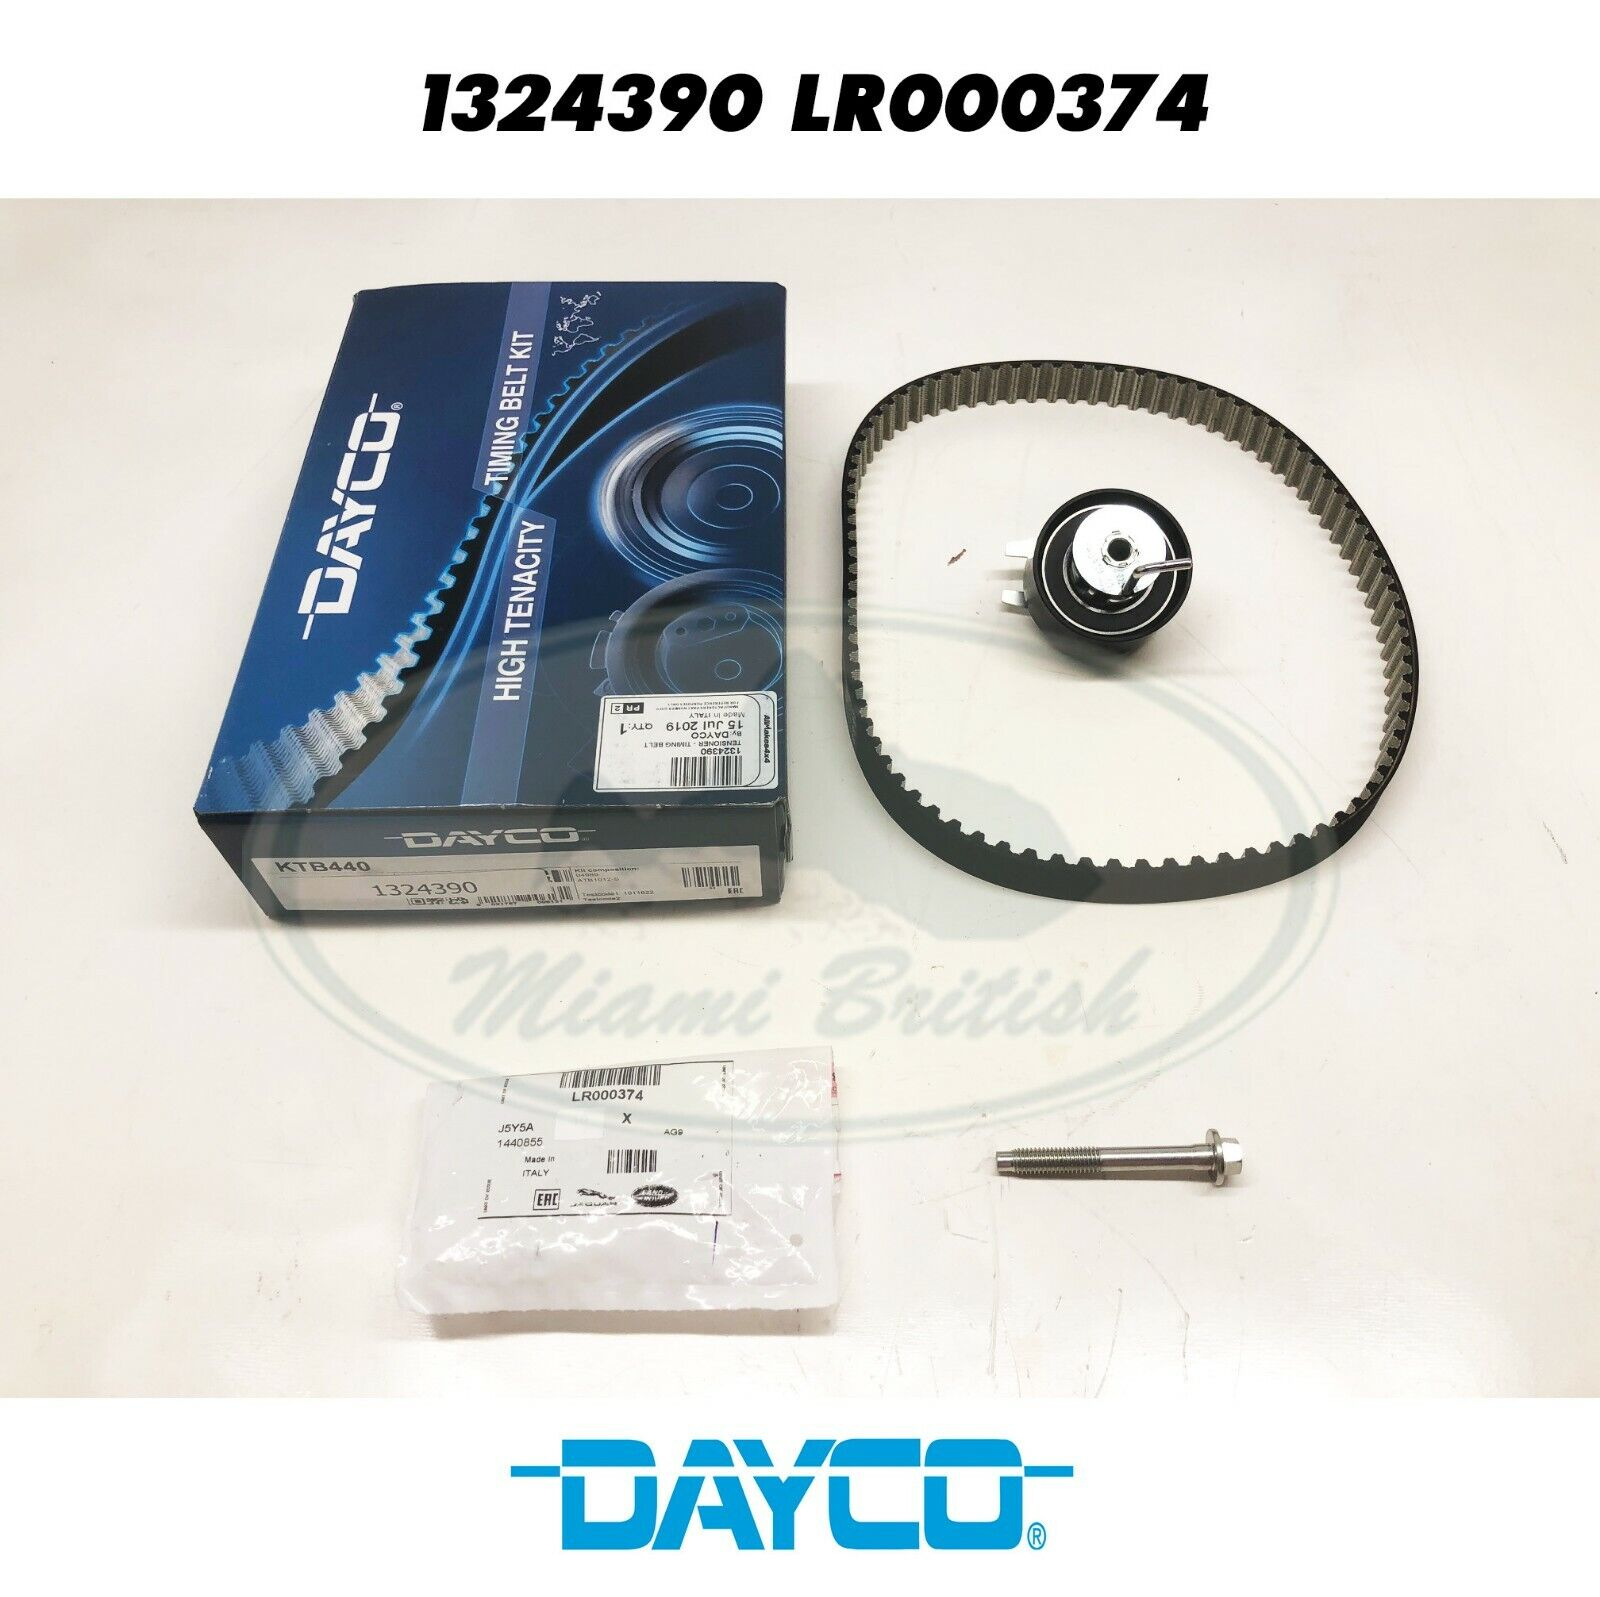 Land Rover Discovery 3 2.7 TDV6  Rear Dayco Timing Belt /& Tensioner  1324390